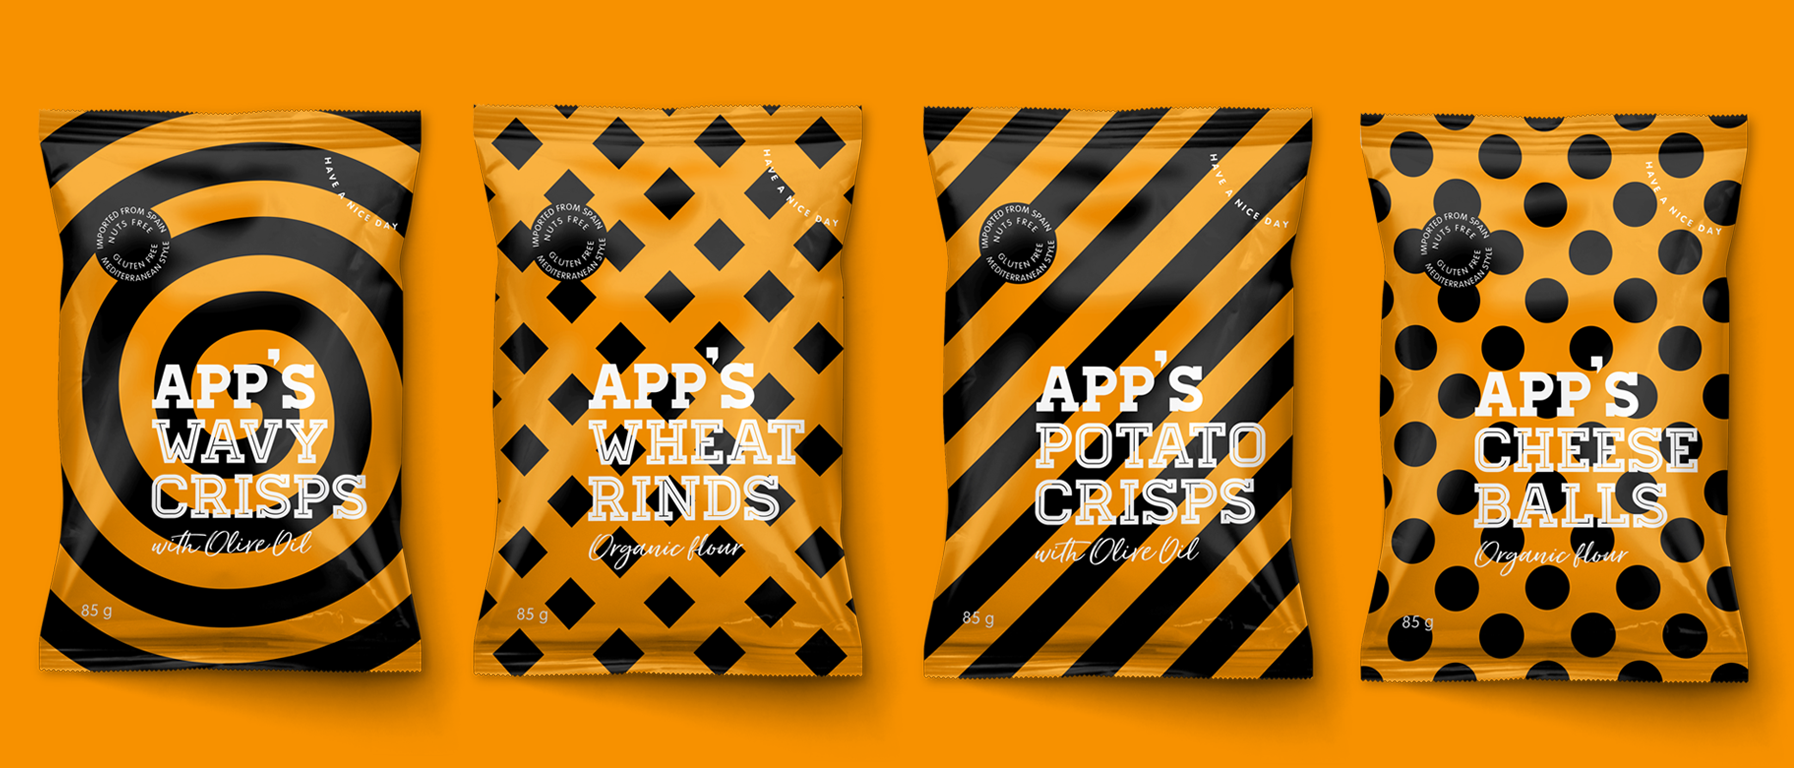 App's Diseño Packaging Snack Wavy Crisps Wheat Rinds Potato Crisps Cheese Balls